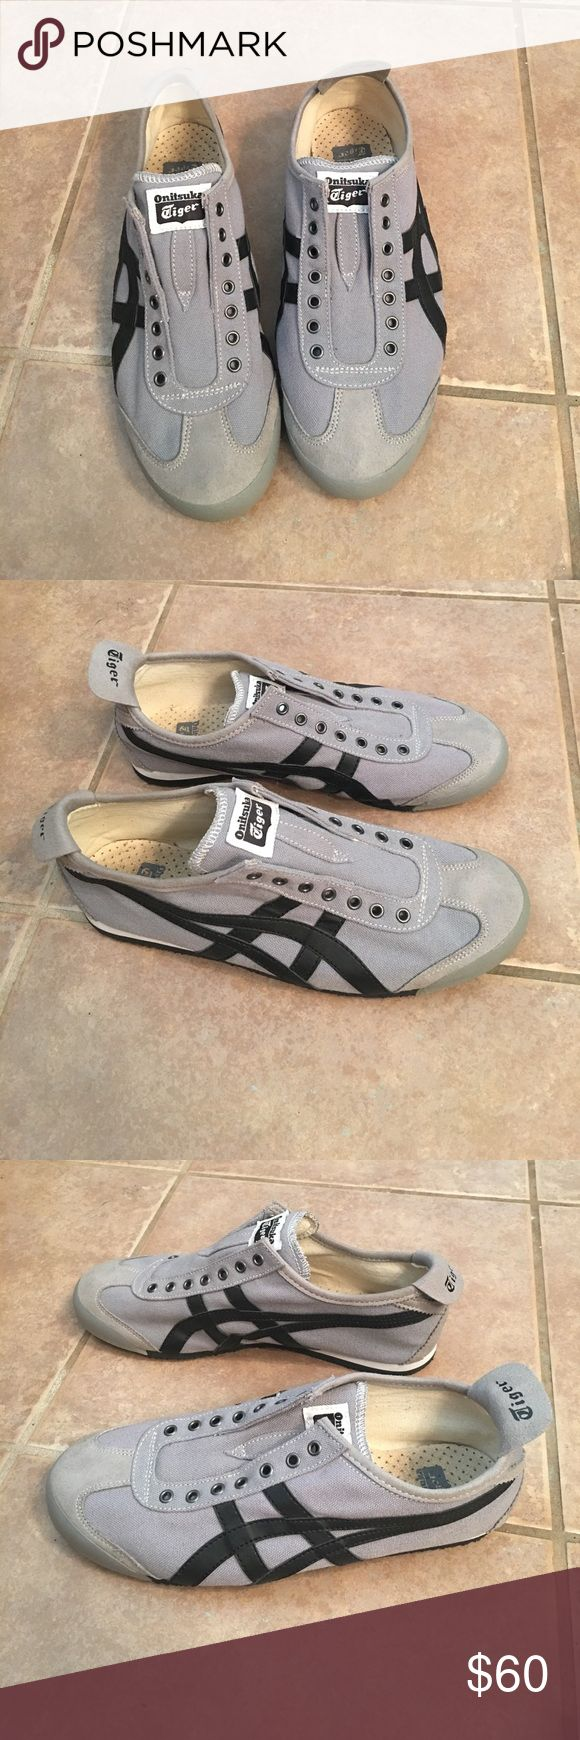 Men's Onitsuka Tiger slip-on athletic shoes Excellent used condition as pictured. No-lace. Ideal athleisure shoe! Goes with just about any outfit. Onitsuka Tiger by Asics Shoes Athletic Shoes